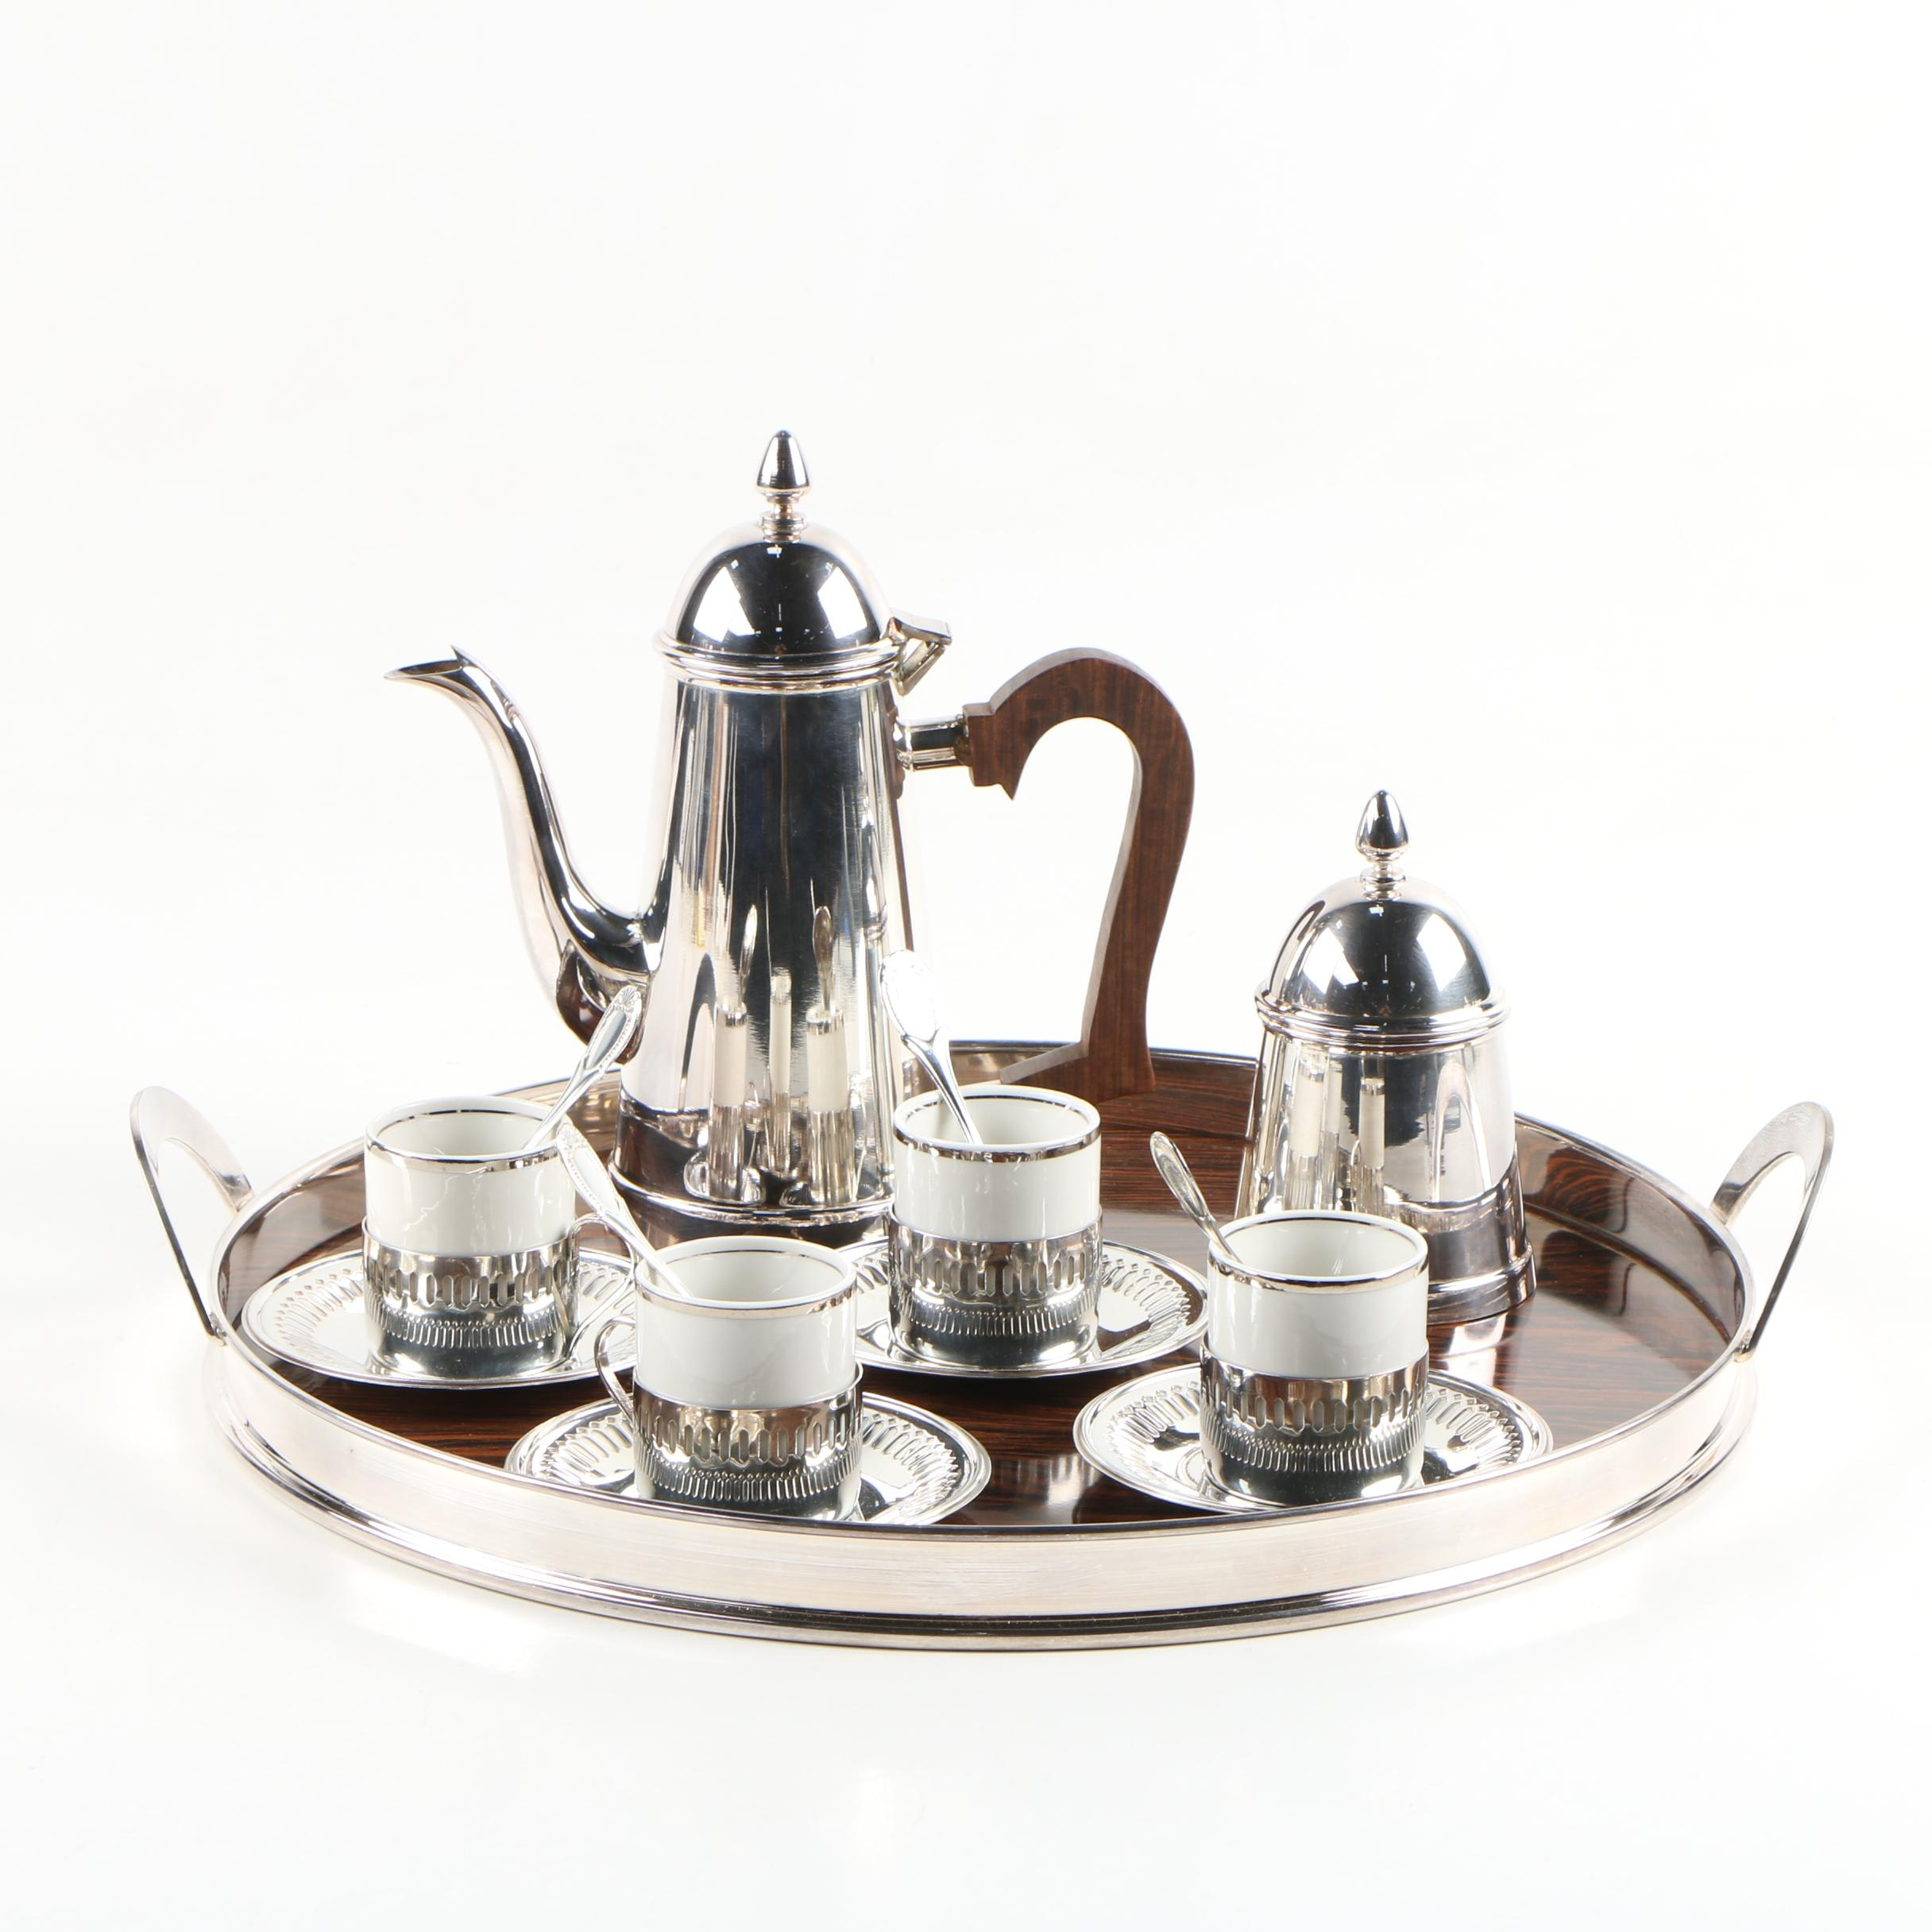 Bellini Silver Plate Demitasse Cup Sets with Coffee Pot, Tray, and Sugar Bowl